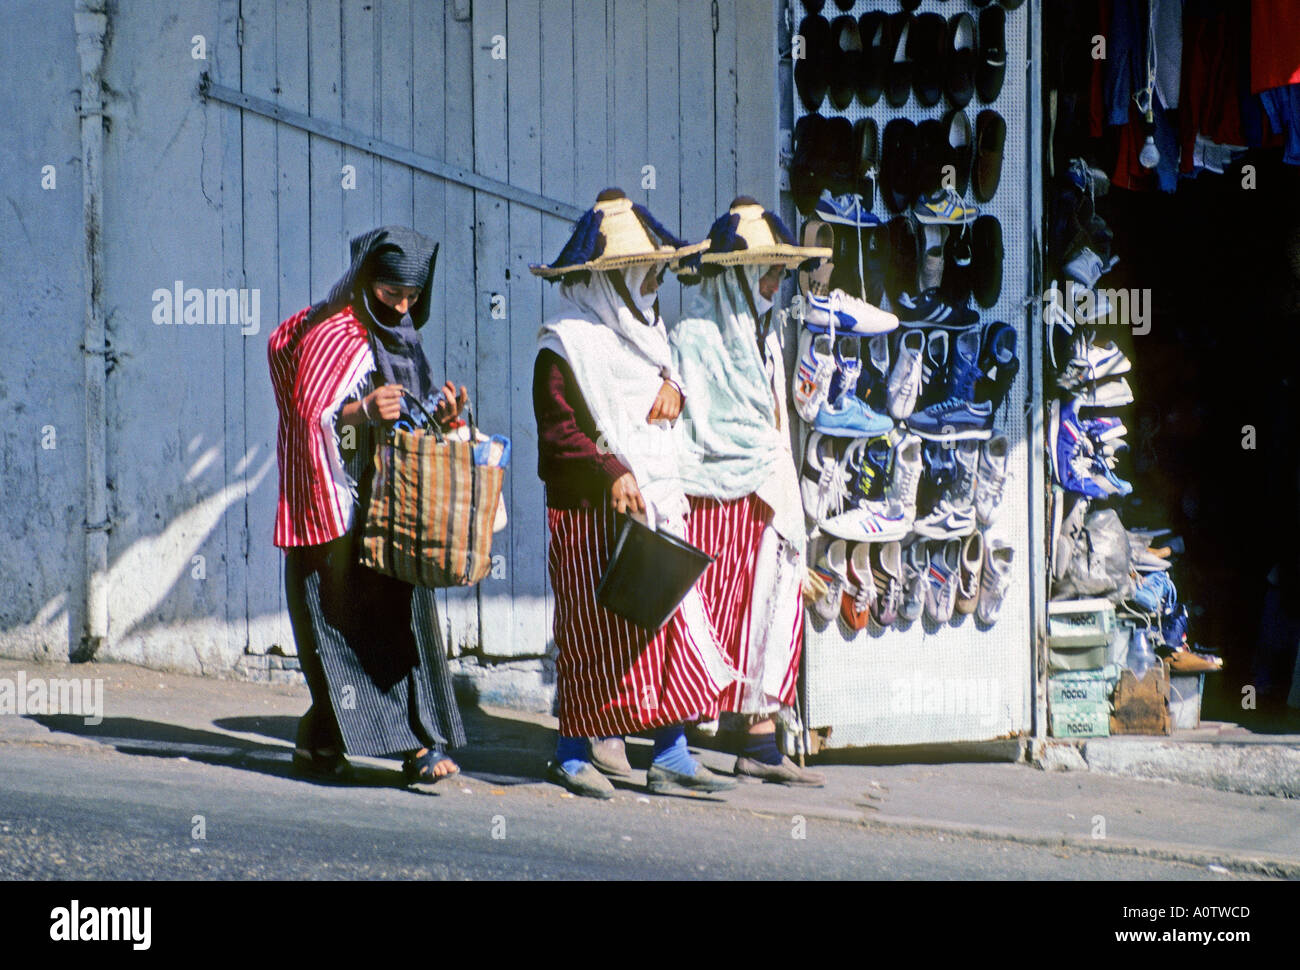 AFRICA MOROCCO TANGIER Berber women in traditional dress shopping in the kasbah section of old Tangier - Stock Image